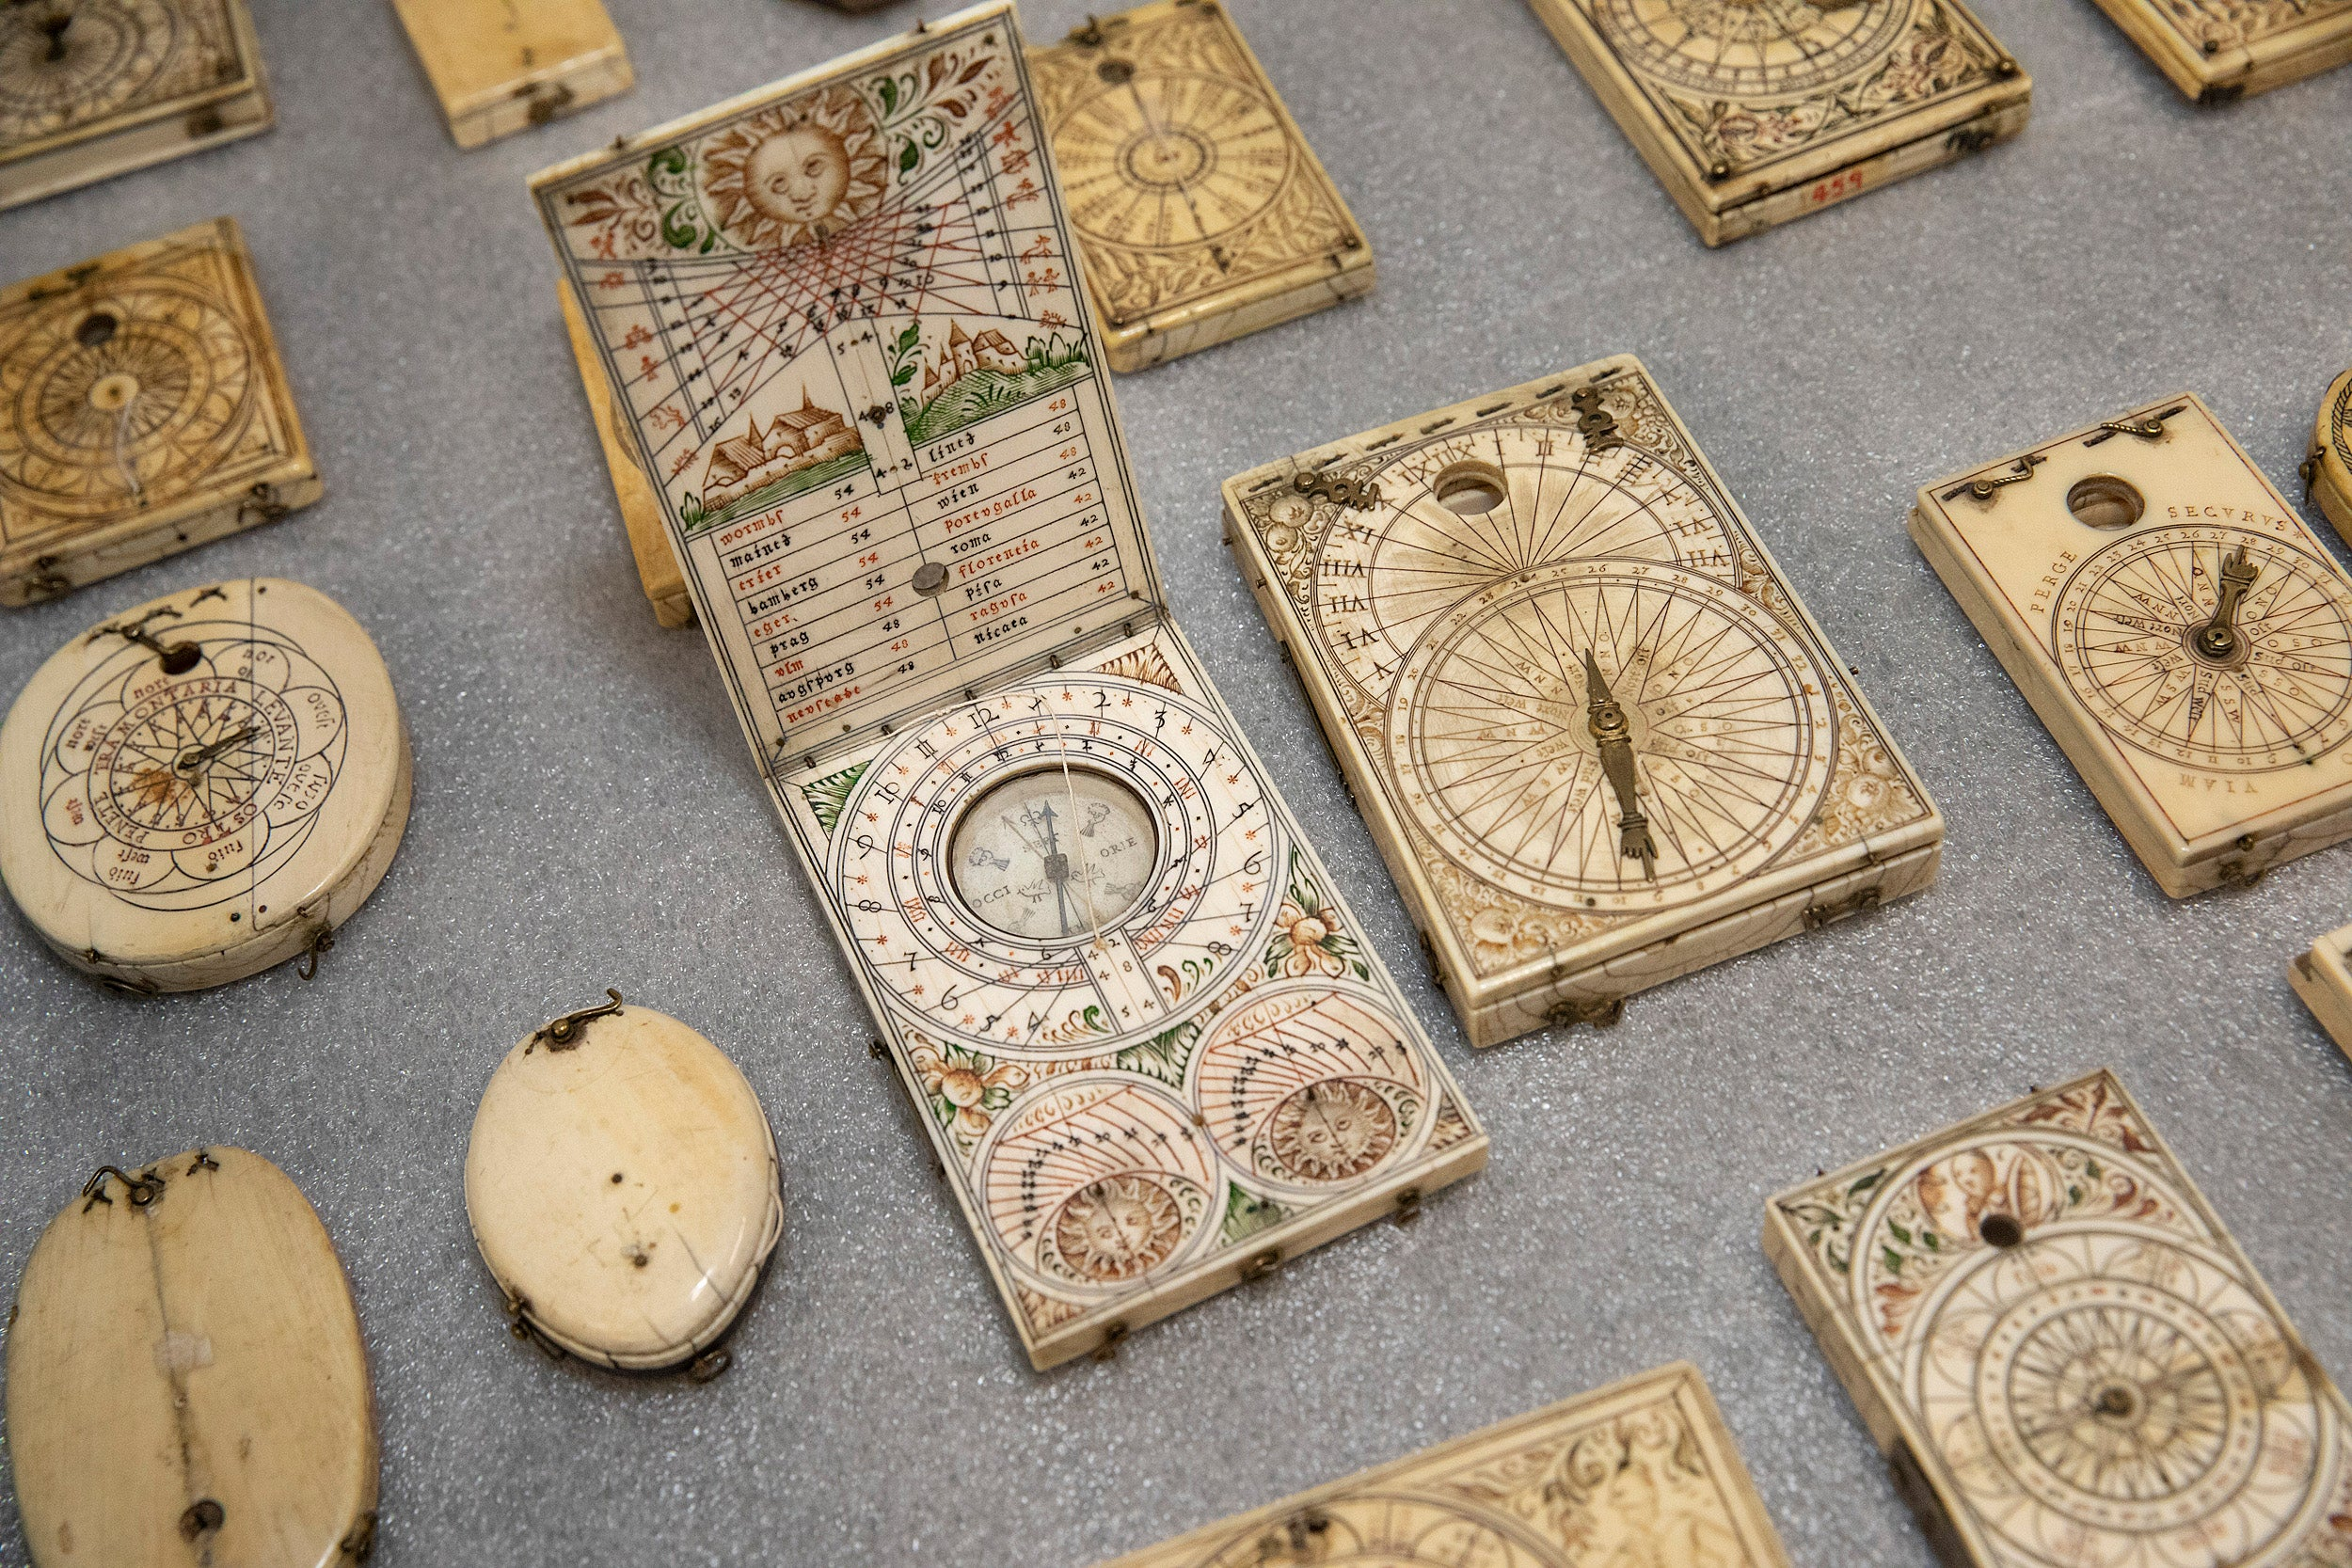 Picture of different kinds of ivory pocket sundials.